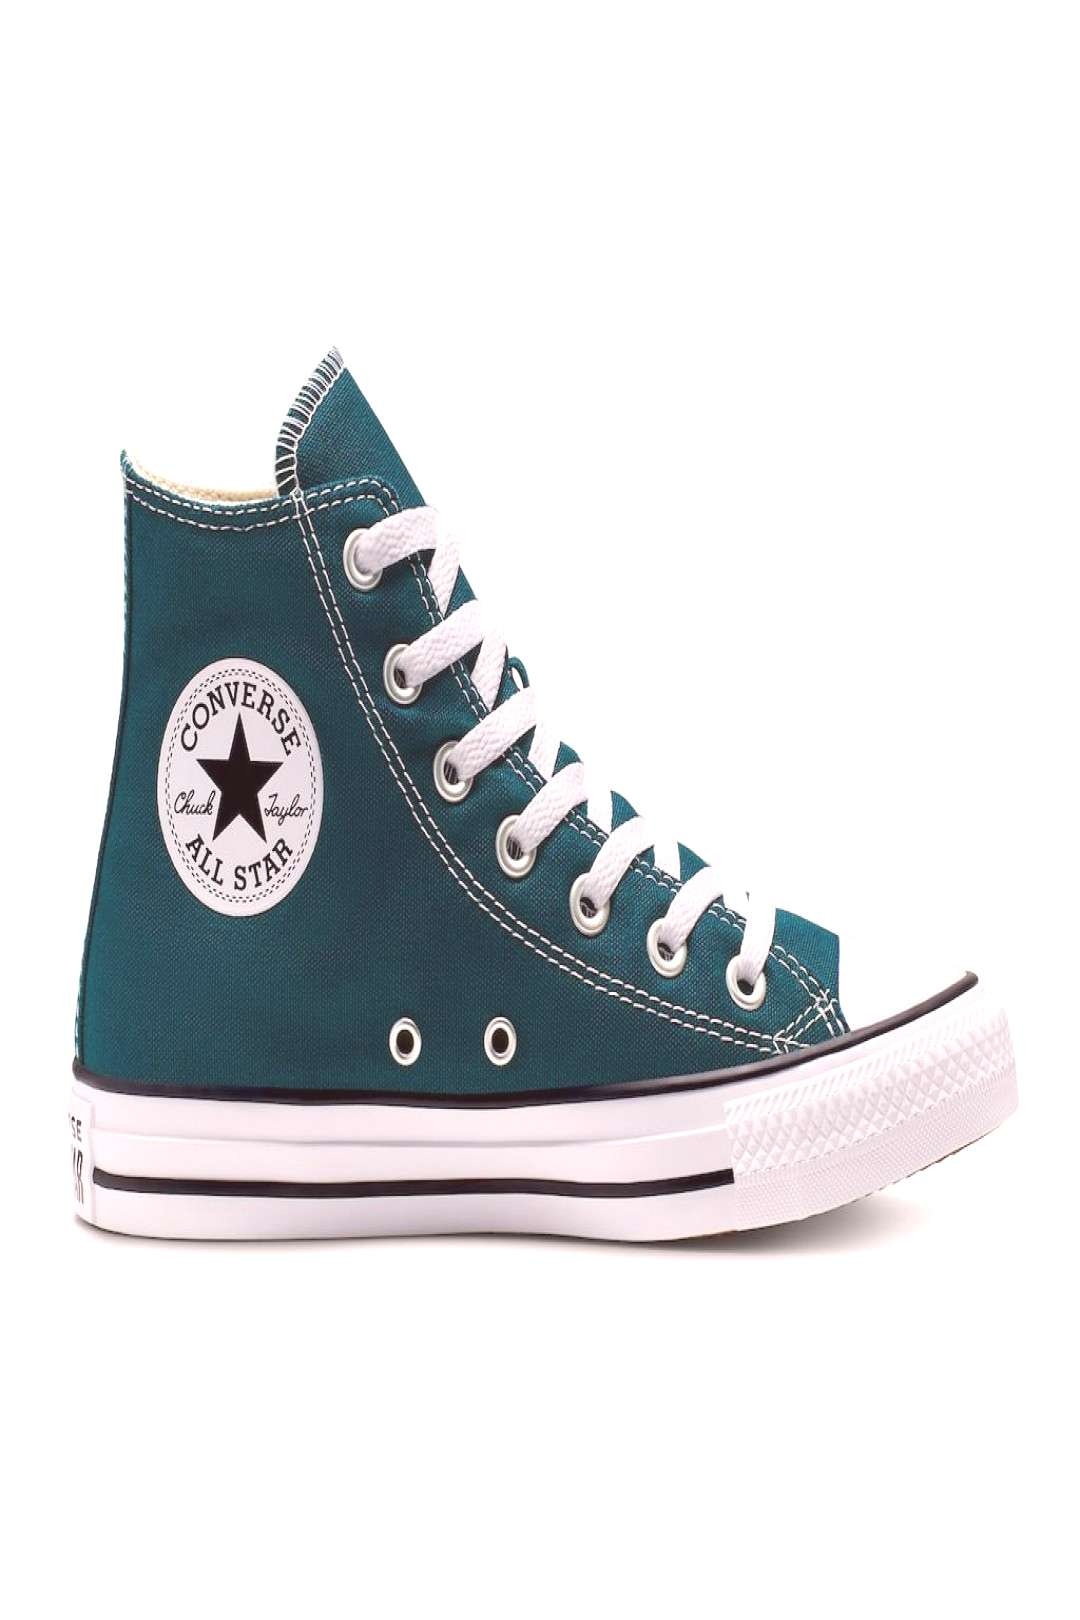 Womens Converse Chuck Taylor All Star High Top Shoes, Size 8.5, Turquoise/Blue